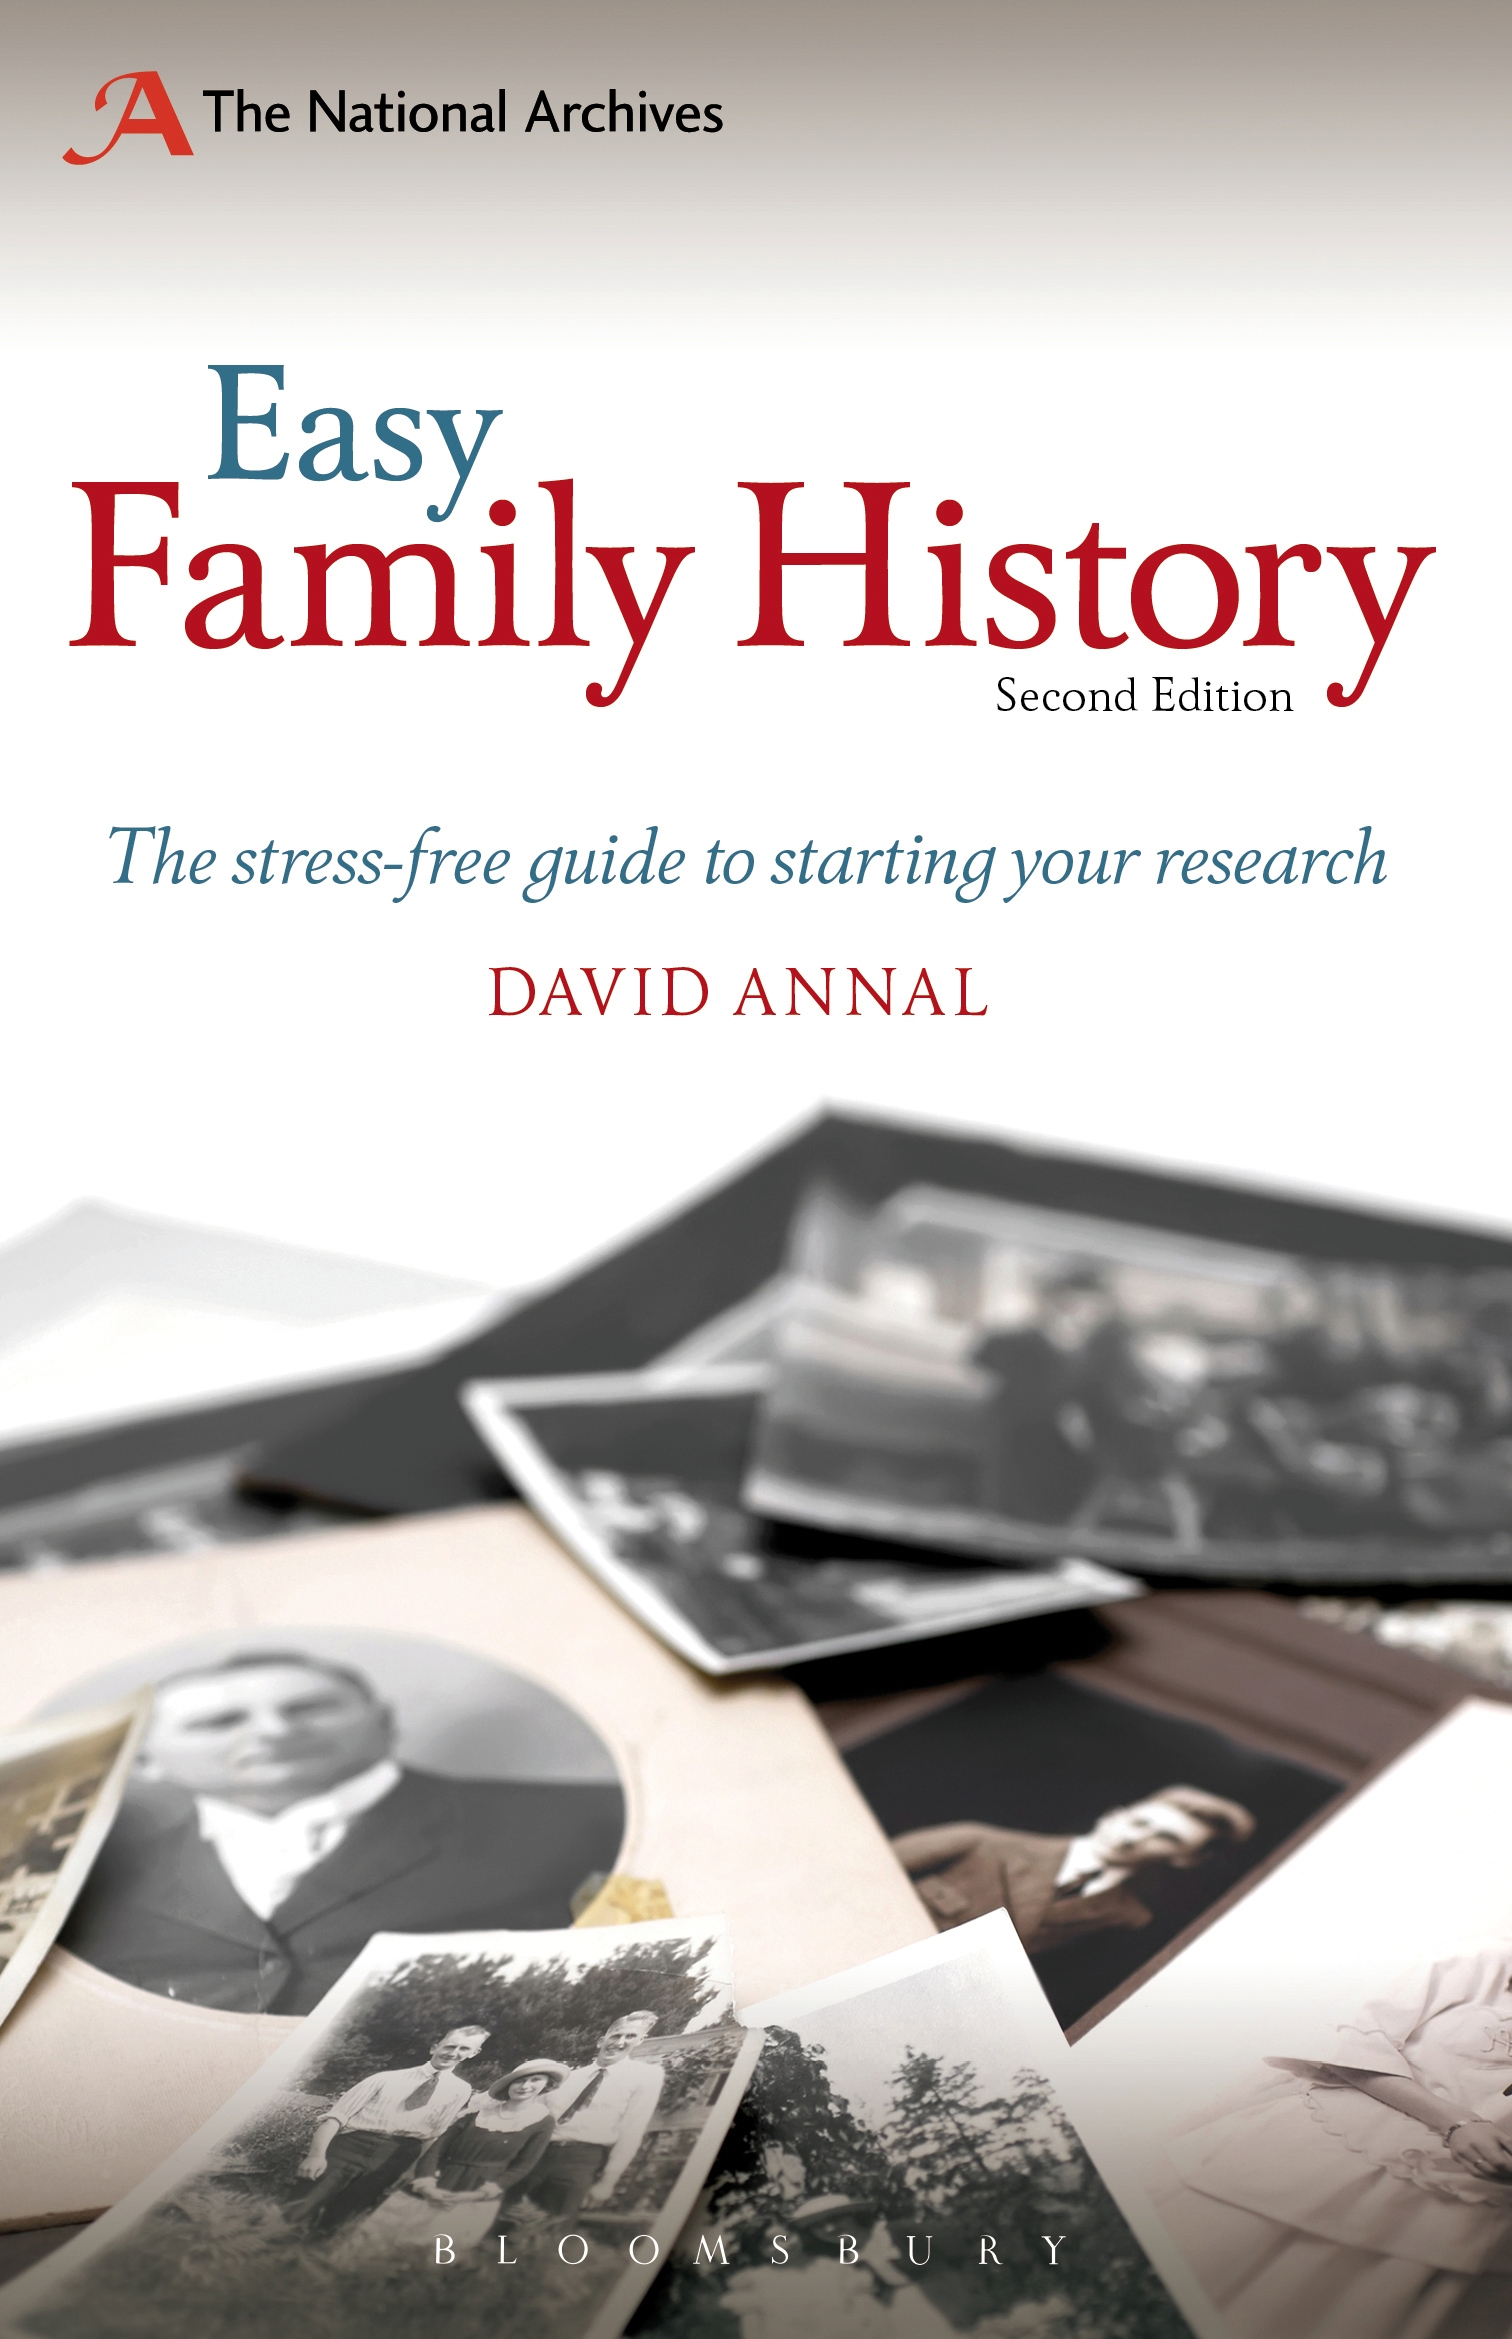 Easy Family History The Beginner's Guide to Starting Your Research